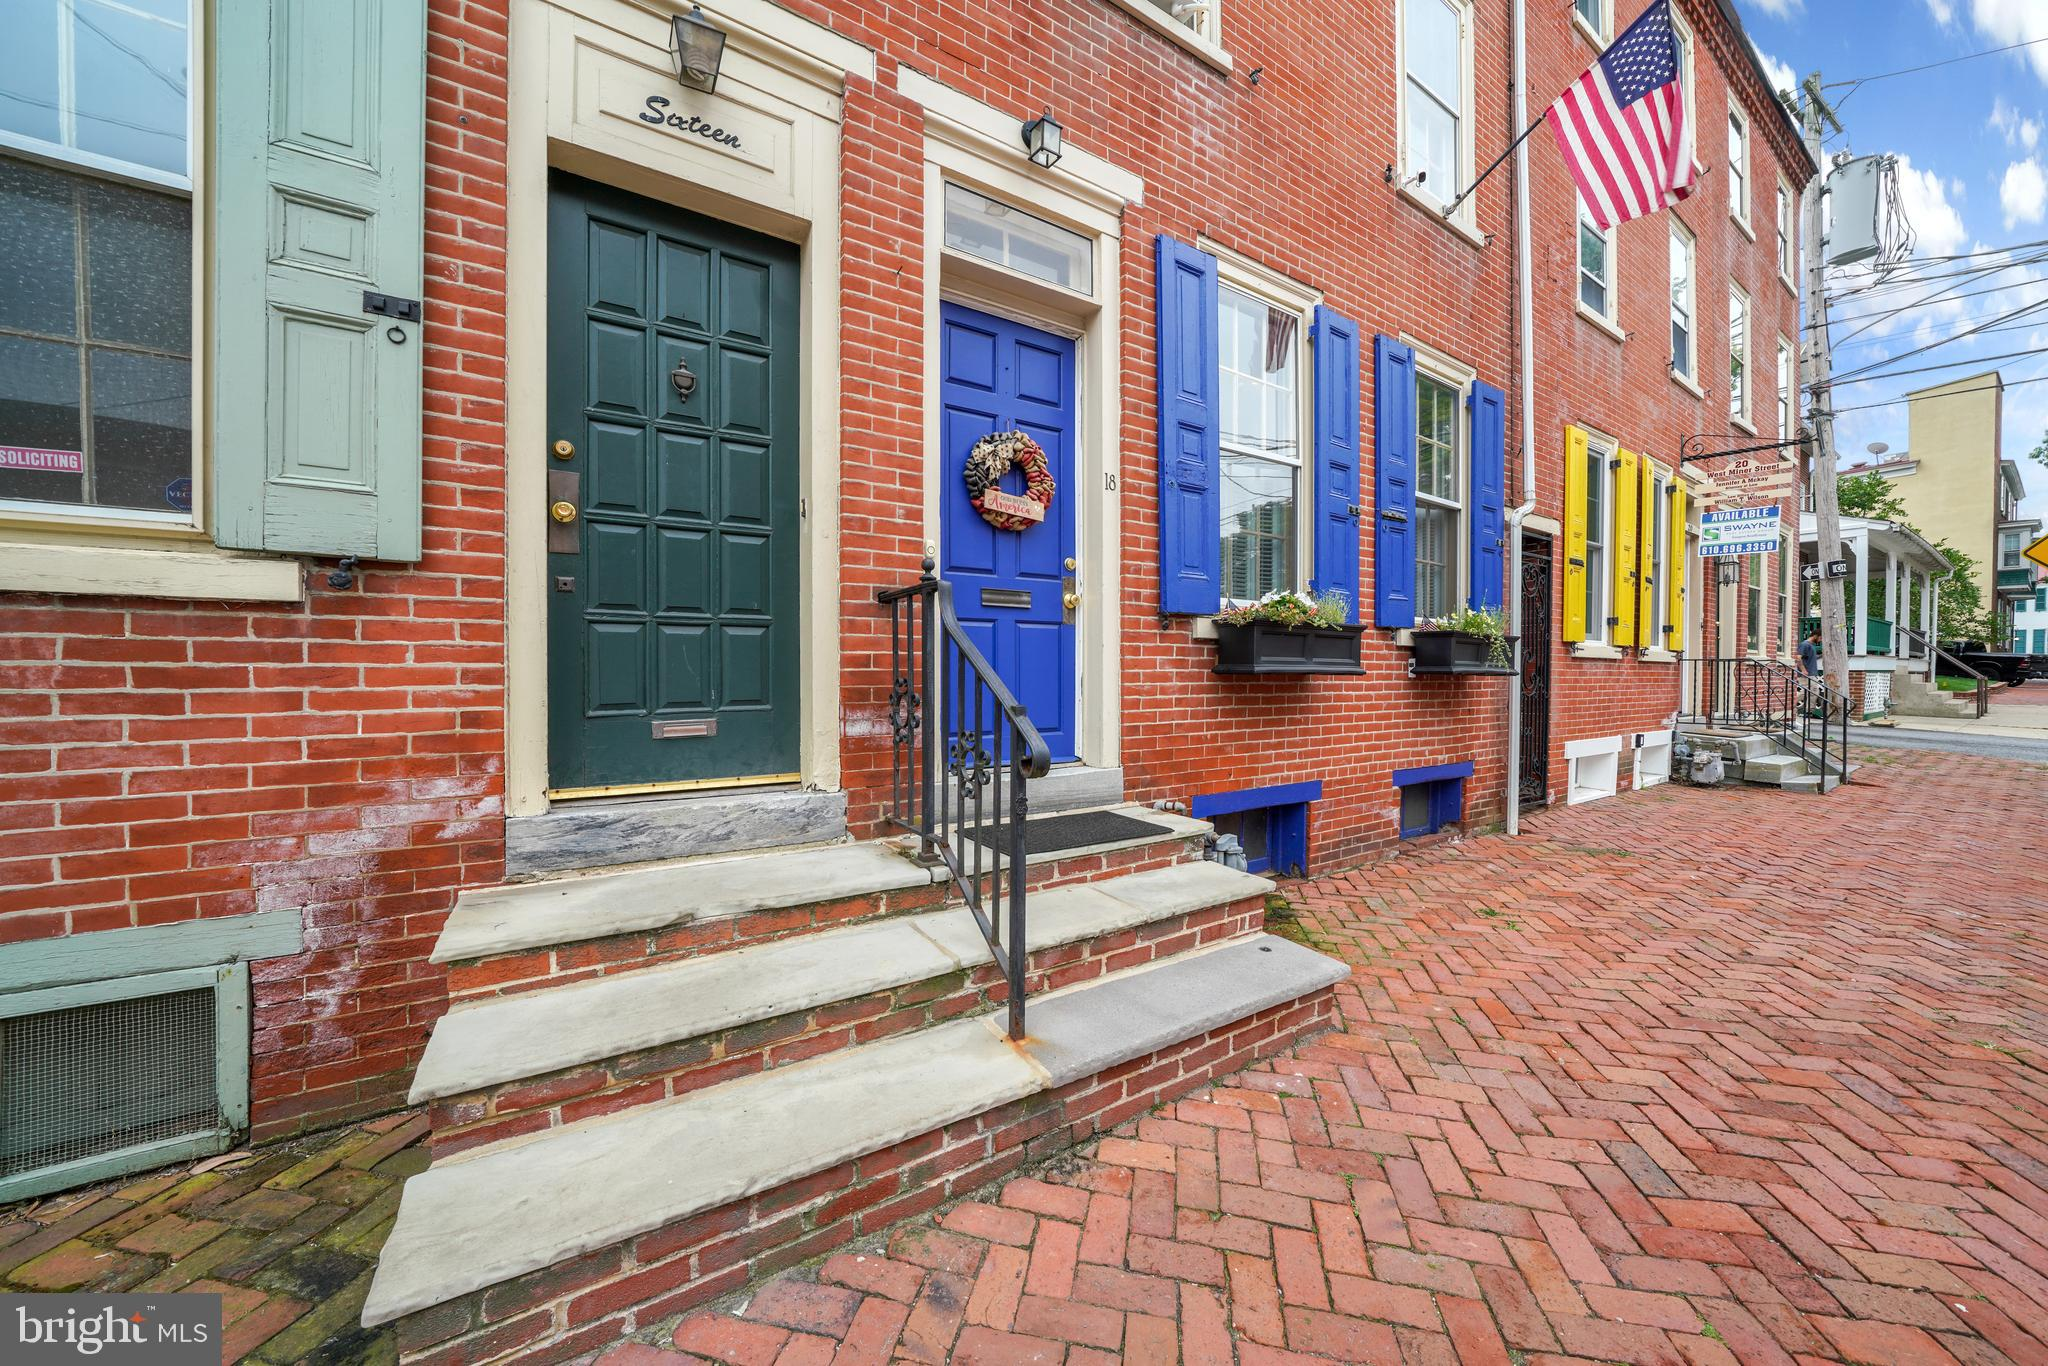 Welcome to The West Chester Borough – A turnkey classic brick row previously included on the West Chester Library Home Tour. This property features 4 Bedrooms, 1 Full Bathroom, 2 Half Bathrooms, hardwood floors throughout, Fenced Rear Brick Courtyard and two car garage with 2 additional parking spaces (separate parcel included in sale). The main floor of this light and bright home features Living Room/Dining Room with built-ins, Fireplace, new updated Kitchen (2018) with Floor-To-Ceiling Cabinetry, Quartz countertops, Gas Cooking, Stainless Appliances and Breakfast Bar, Mudroom with Brick Floor and Half Bath. The second-floor features 2 Bedrooms, Sitting Room with skylights, One Full Bath, One Half Bath and Laundry. The third-floor features two spacious additional bedrooms, one currently utilized as an in-home office with exposed brick. Located close to West Chester University, West Chester's Downtown, and all major highways. Don't miss out this quintessential West Chester Borough home.